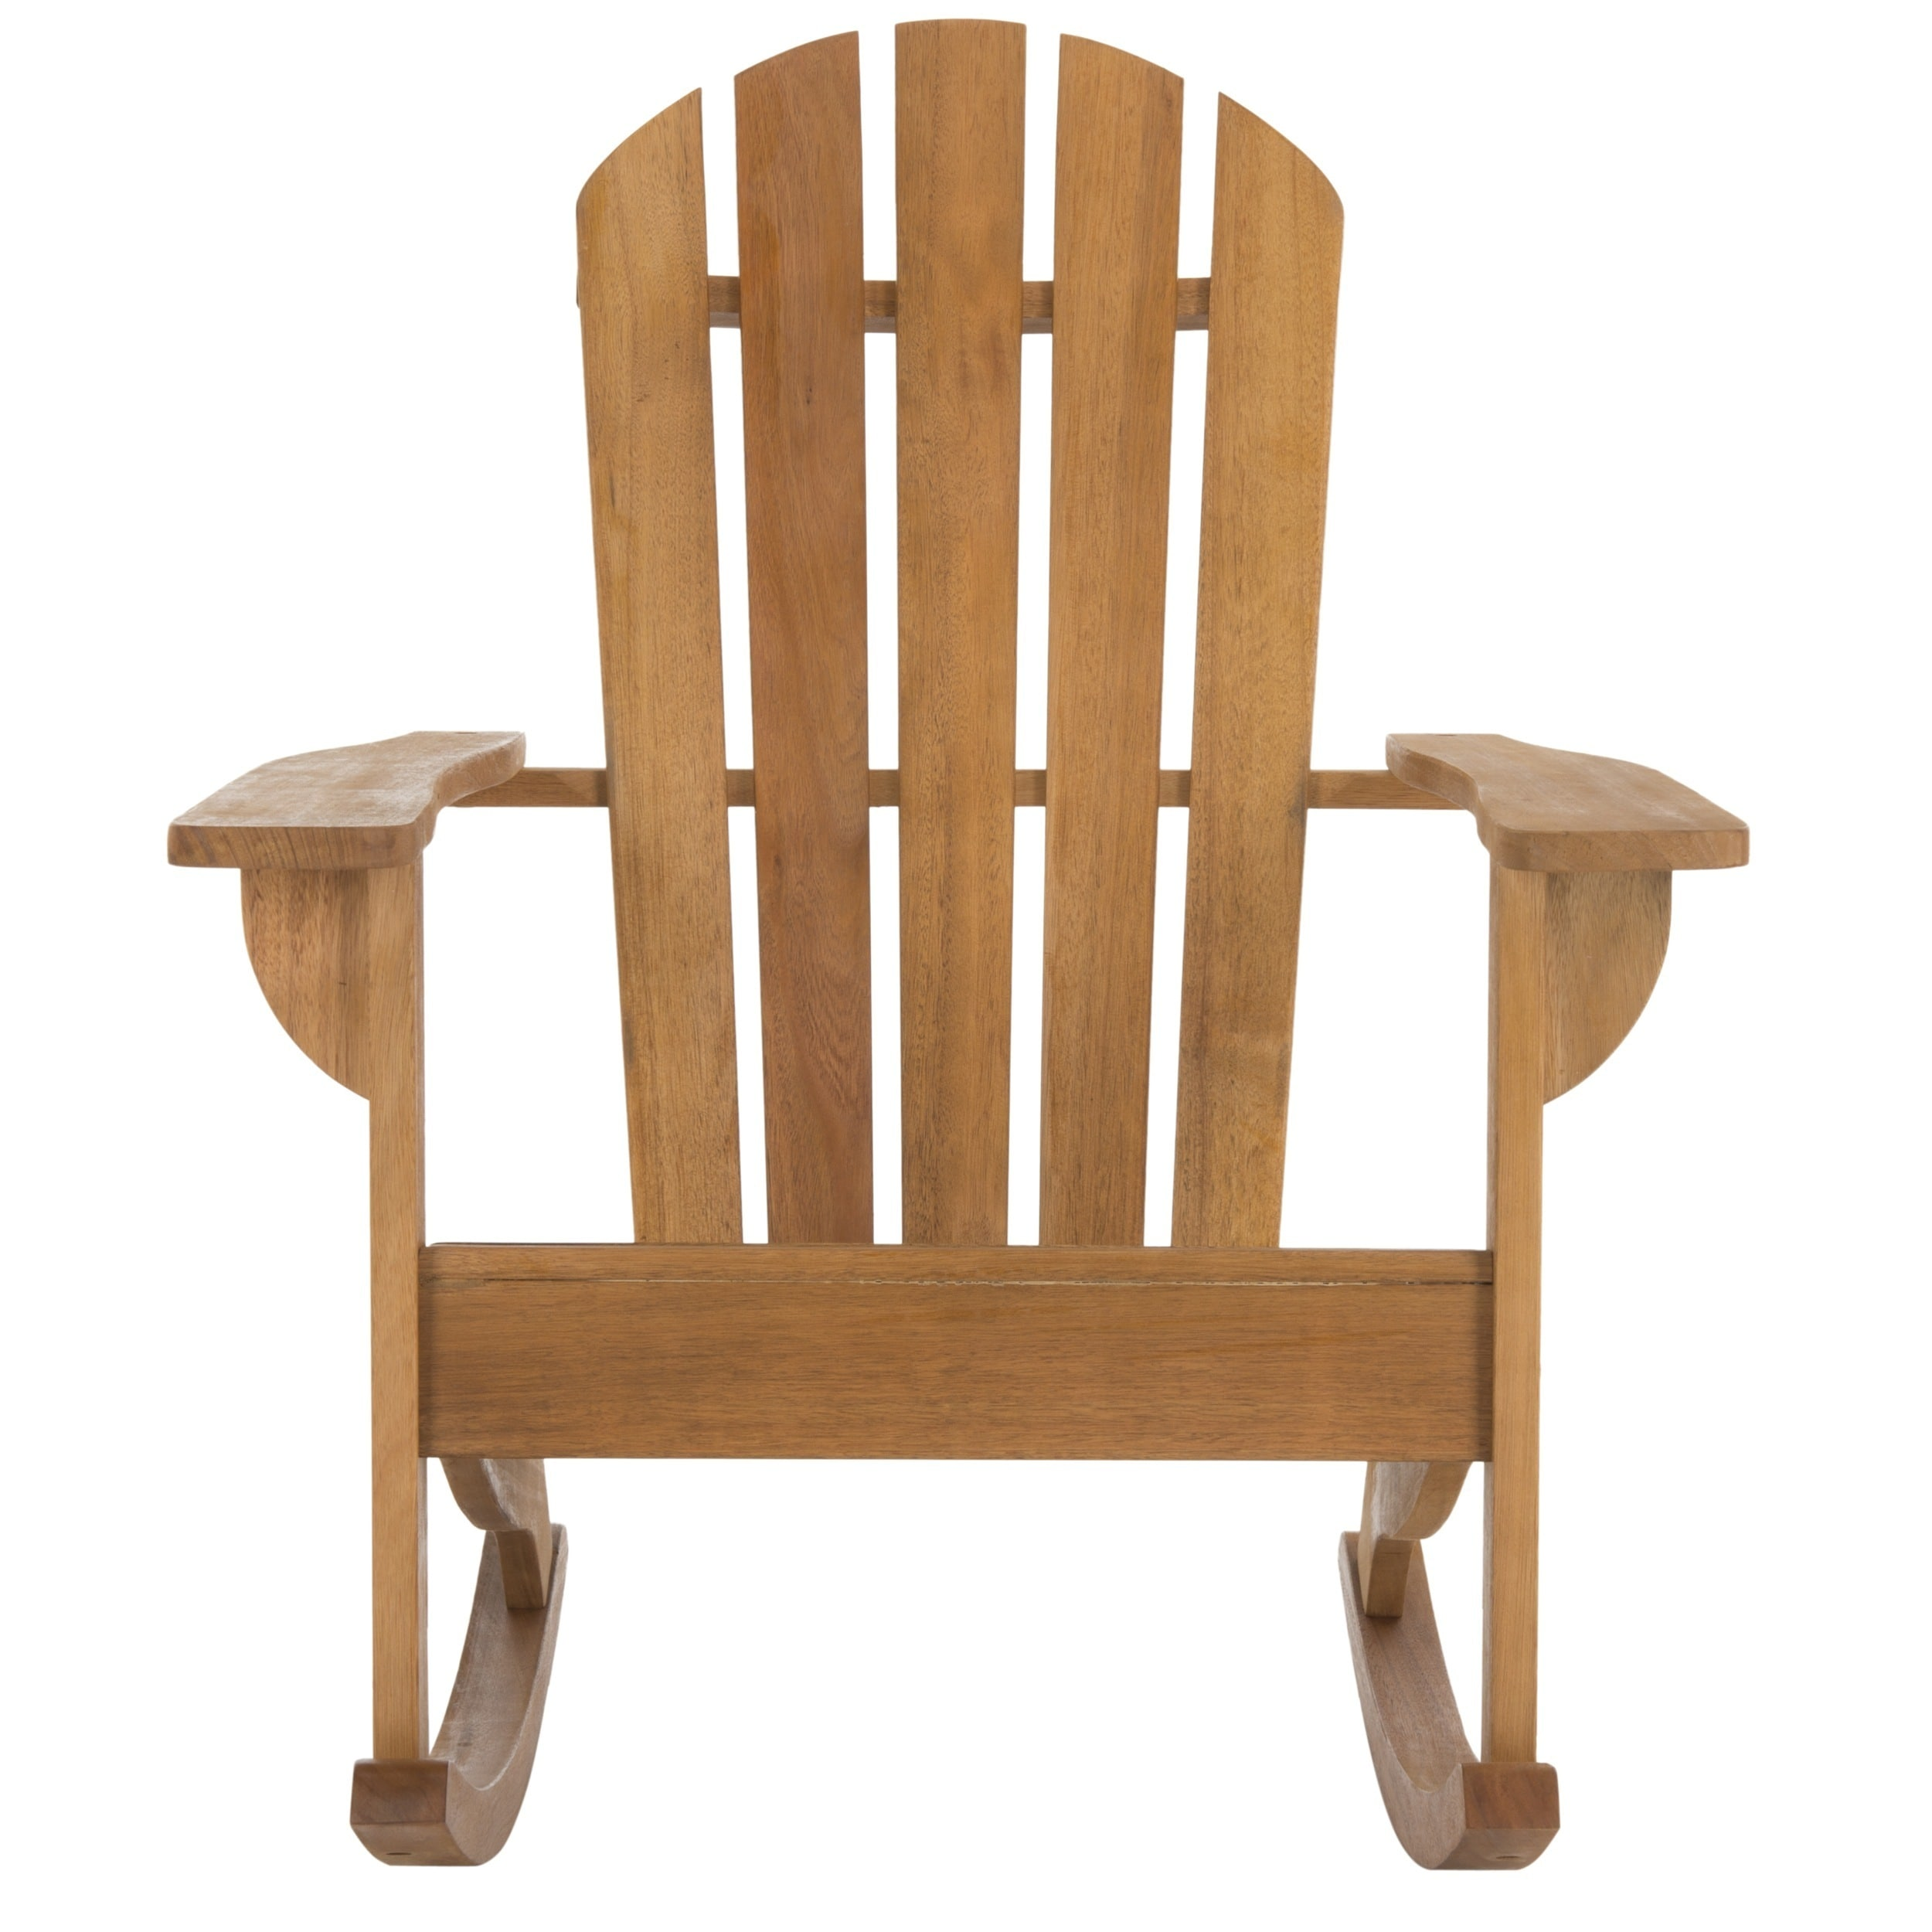 Safavieh Brizio Adirondack Teak Colored Rocking Chair   Free Shipping Today    Overstock   24272785